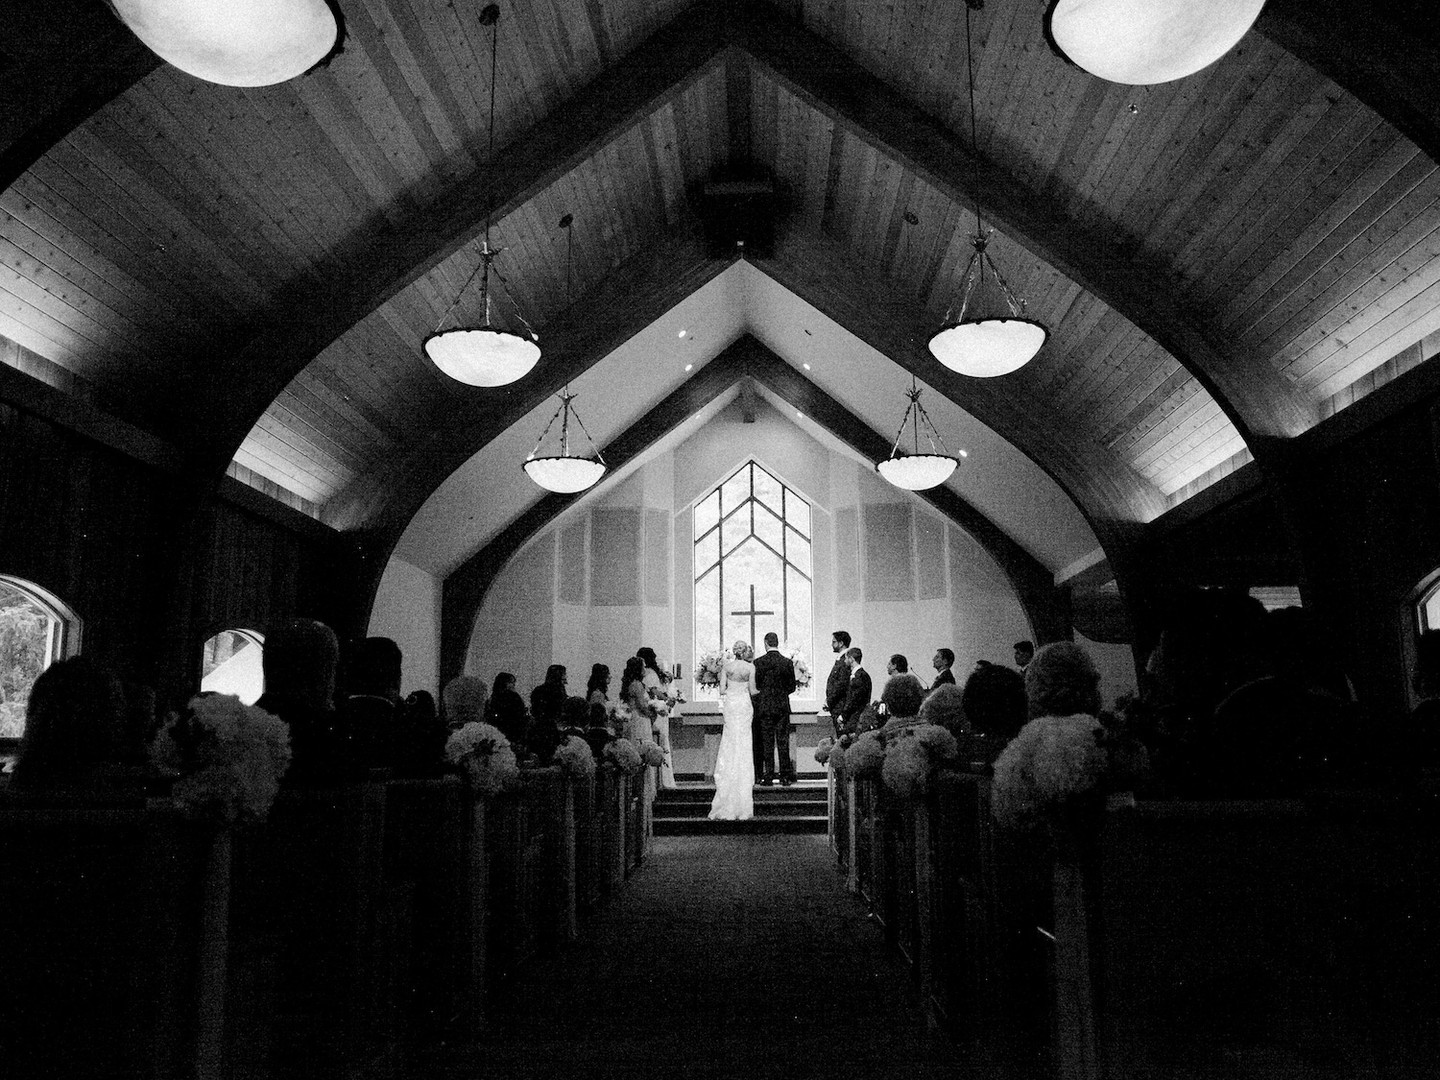 vail-interfaith-chapel-wedding-ceremony.